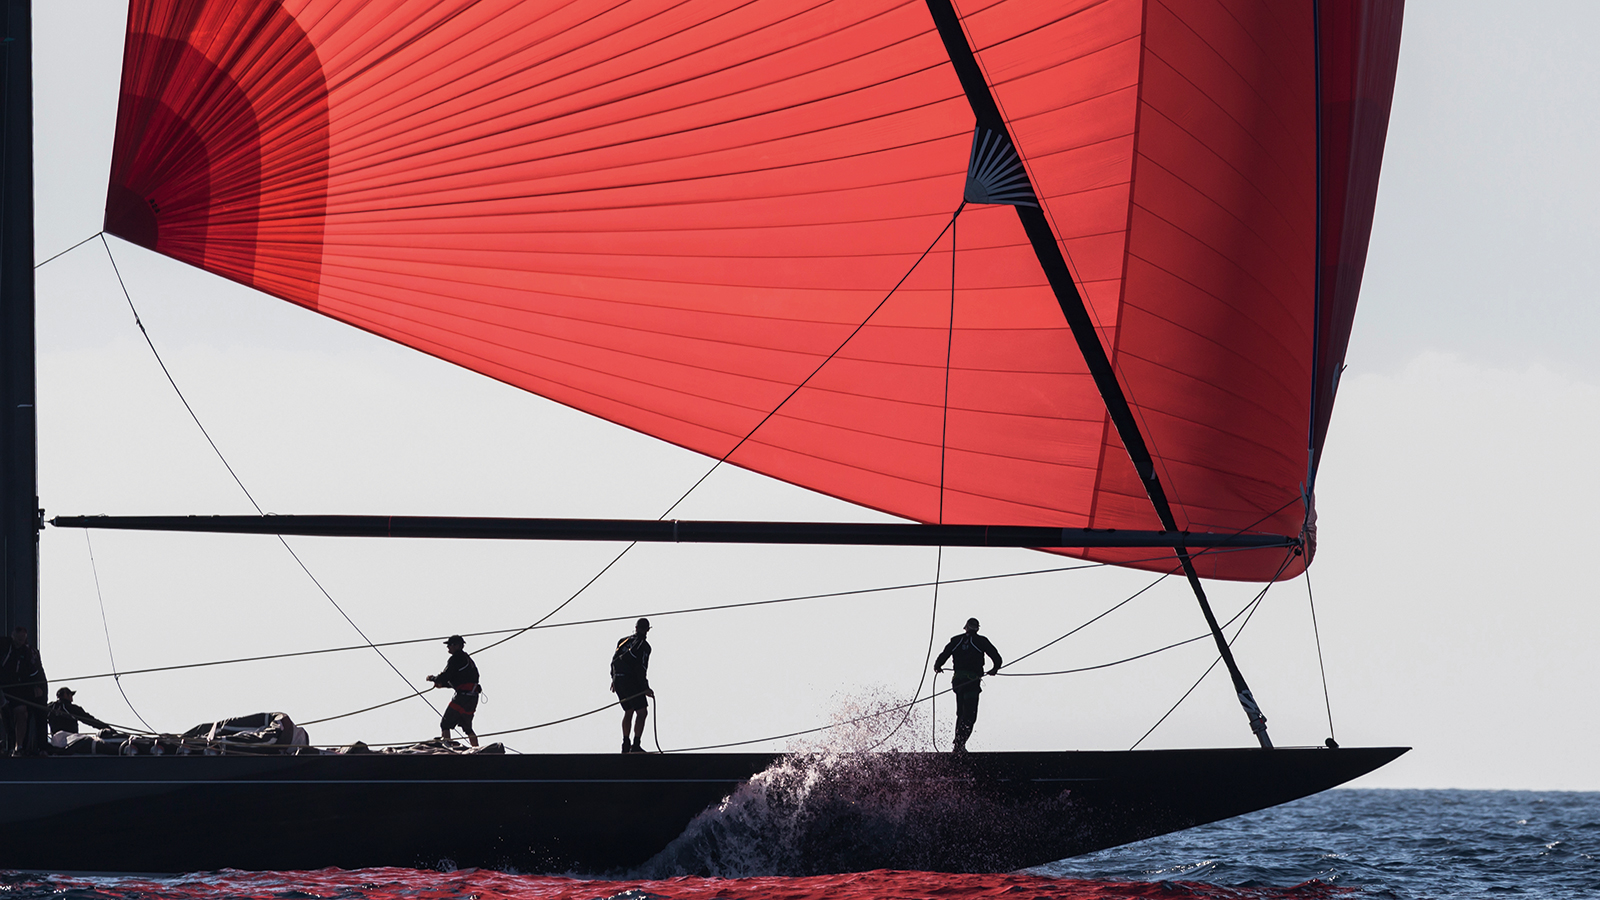 side-view-of-the-j-class-sailing-yacht-svea-credit-carlo-borlenghi